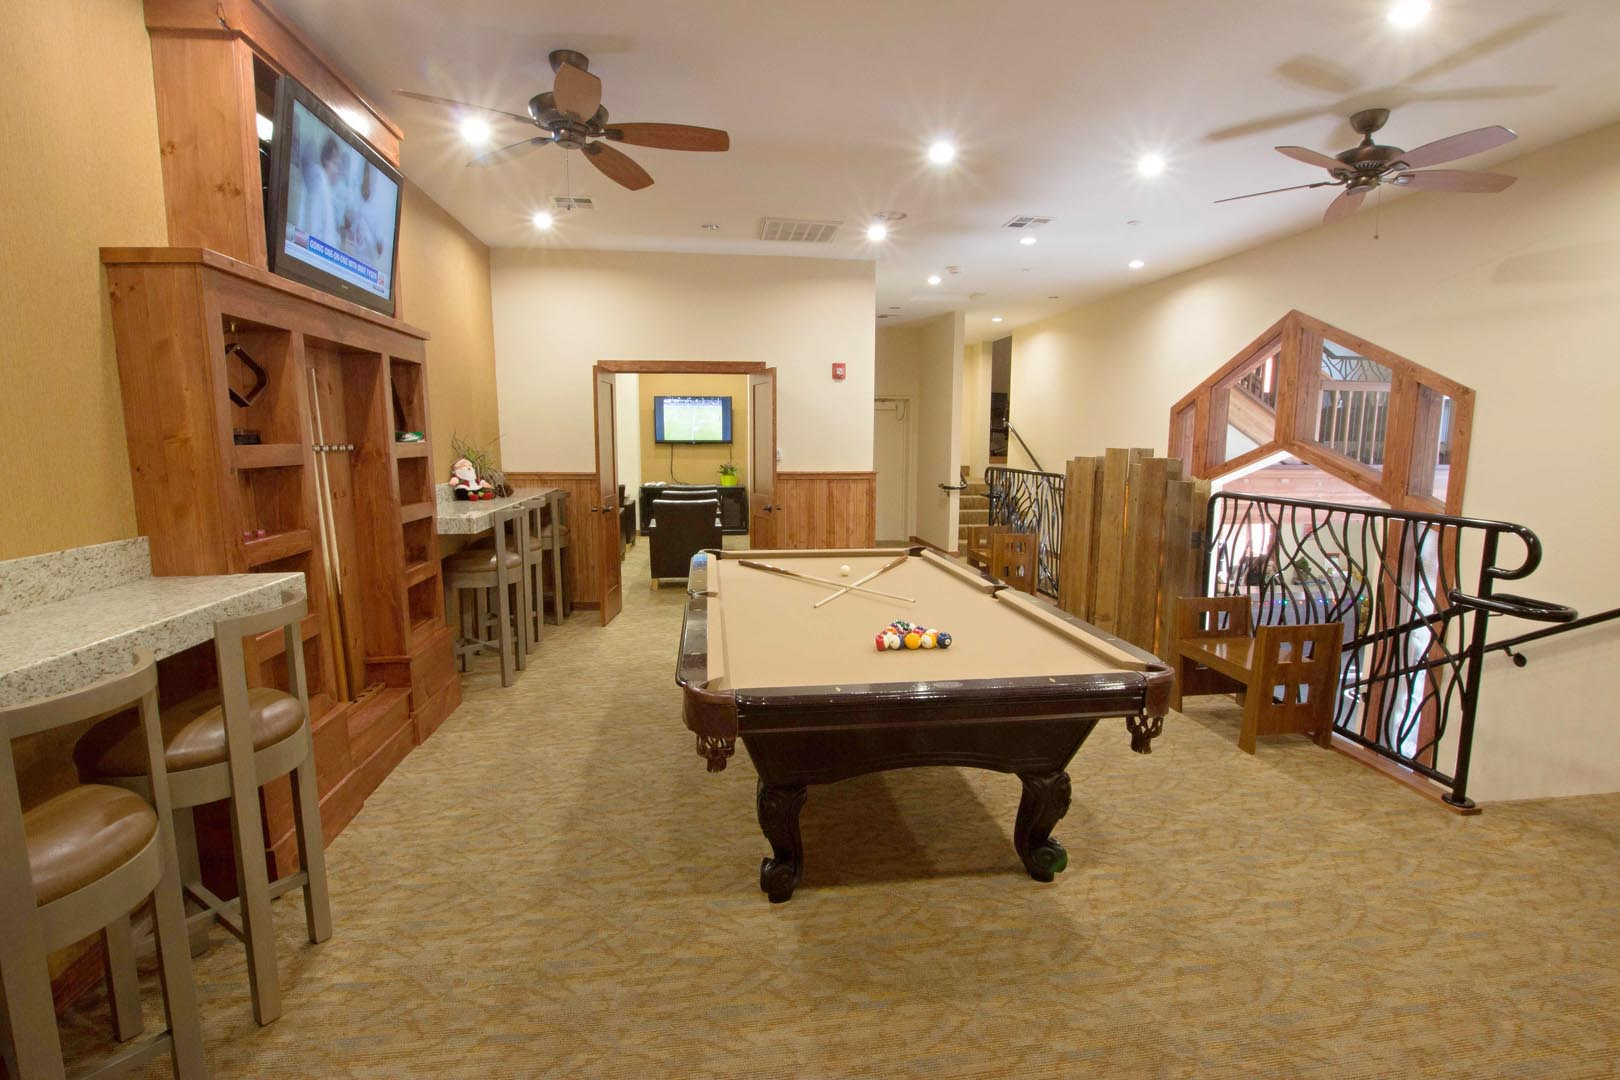 An expansive lobby area with a pool table section at VRI's Mountain Retreat Resort in California.